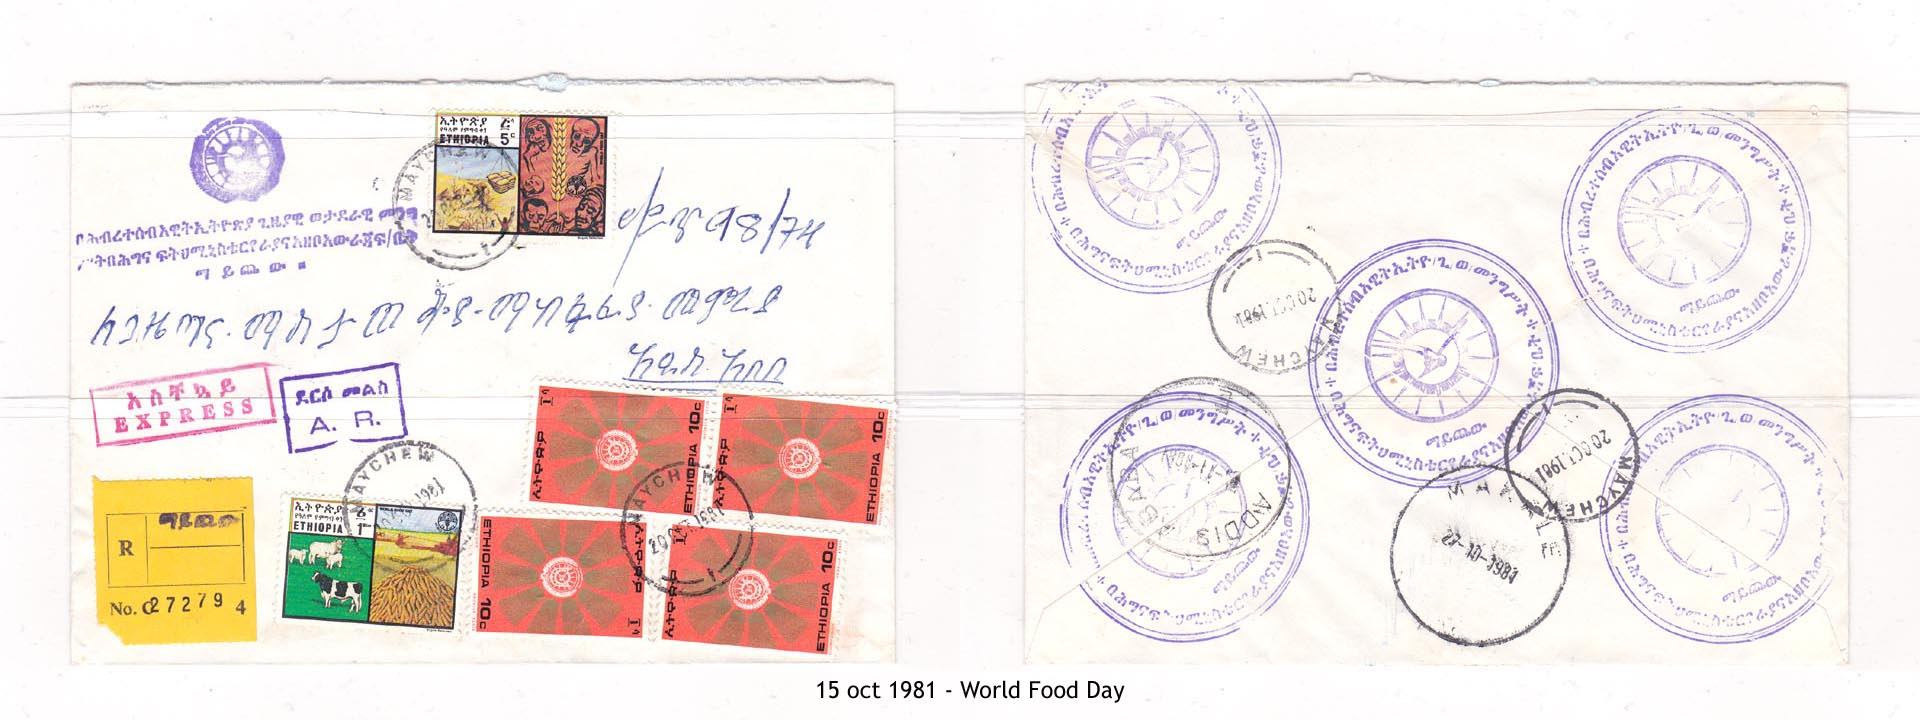 19811015 - World Food Day z